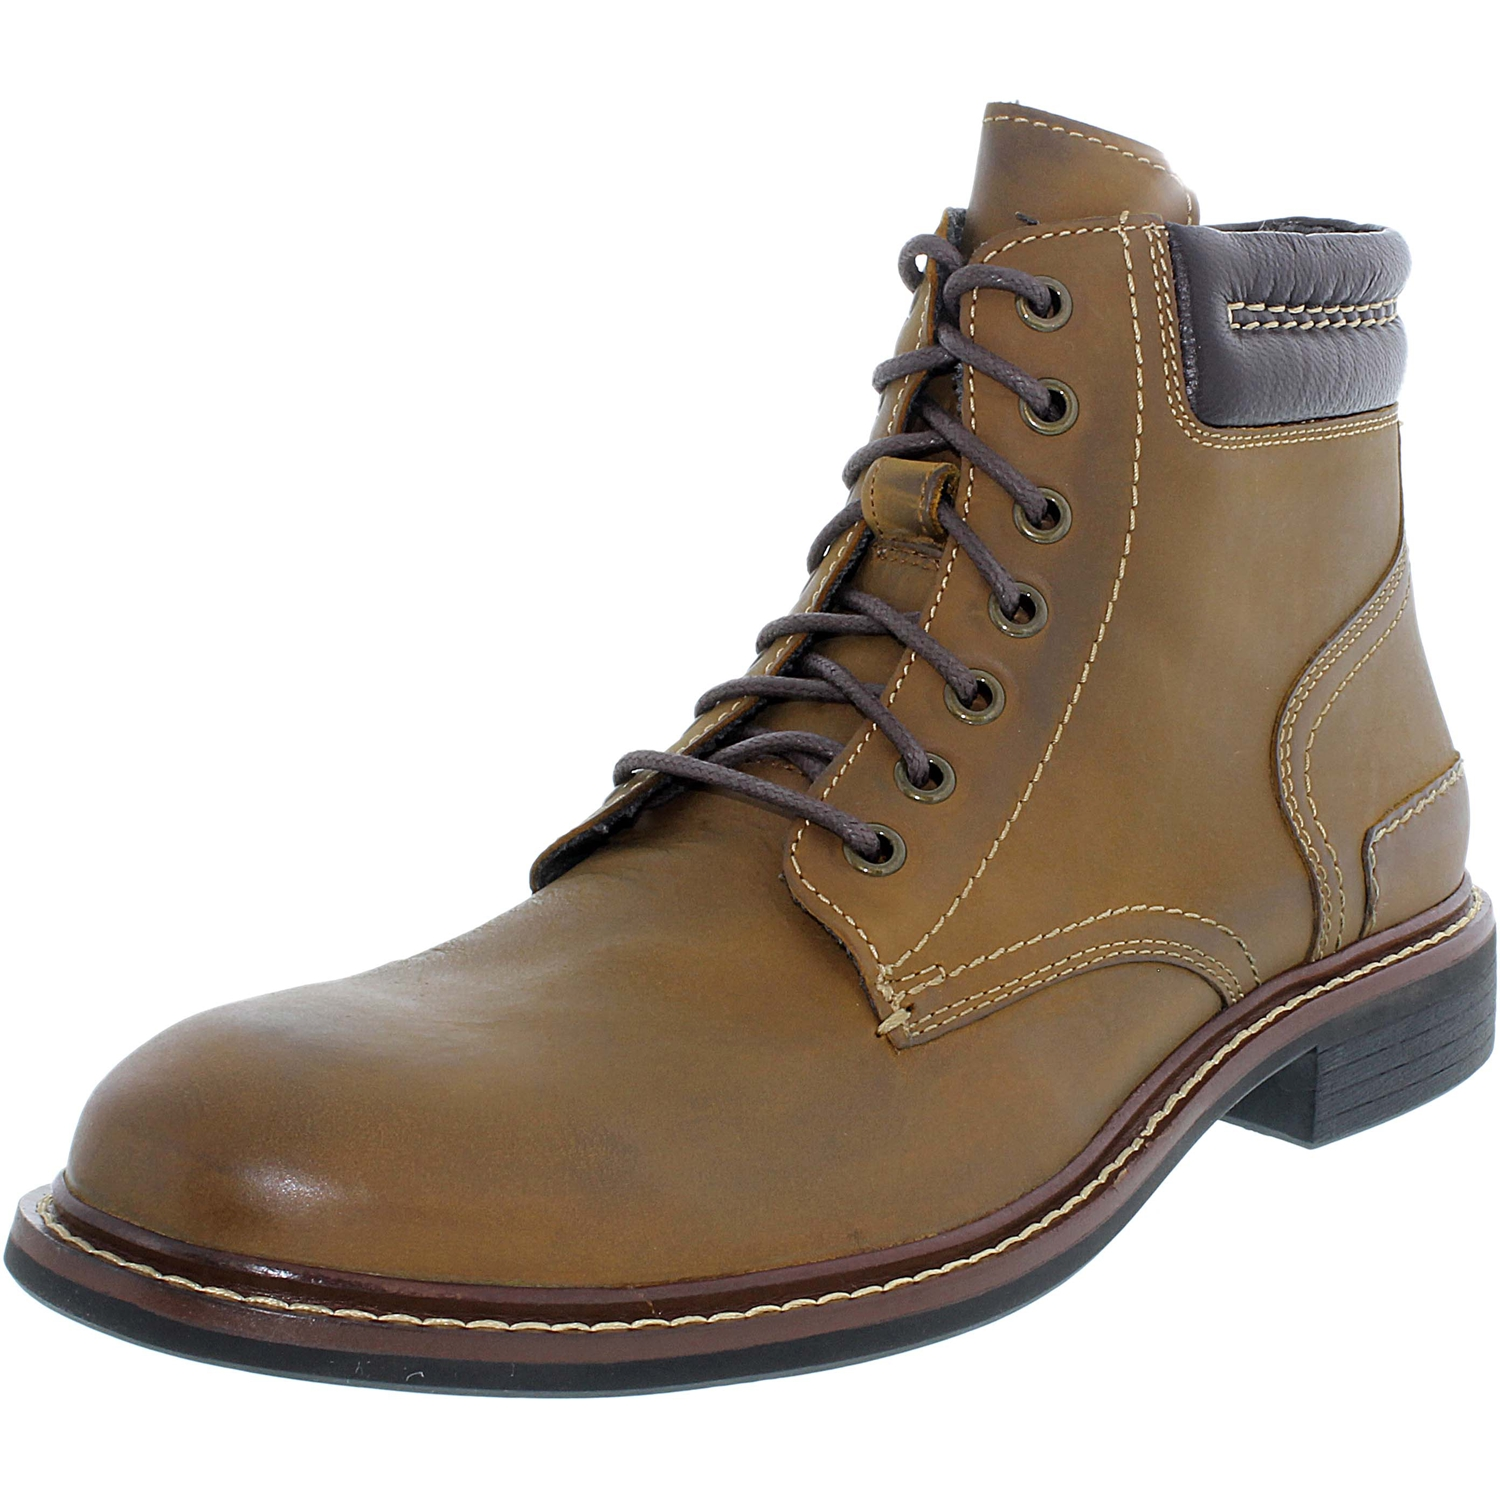 Cole Haan Men's Bryce Lace Boot Hazel Ankle-High Leather Boot - 11.5M